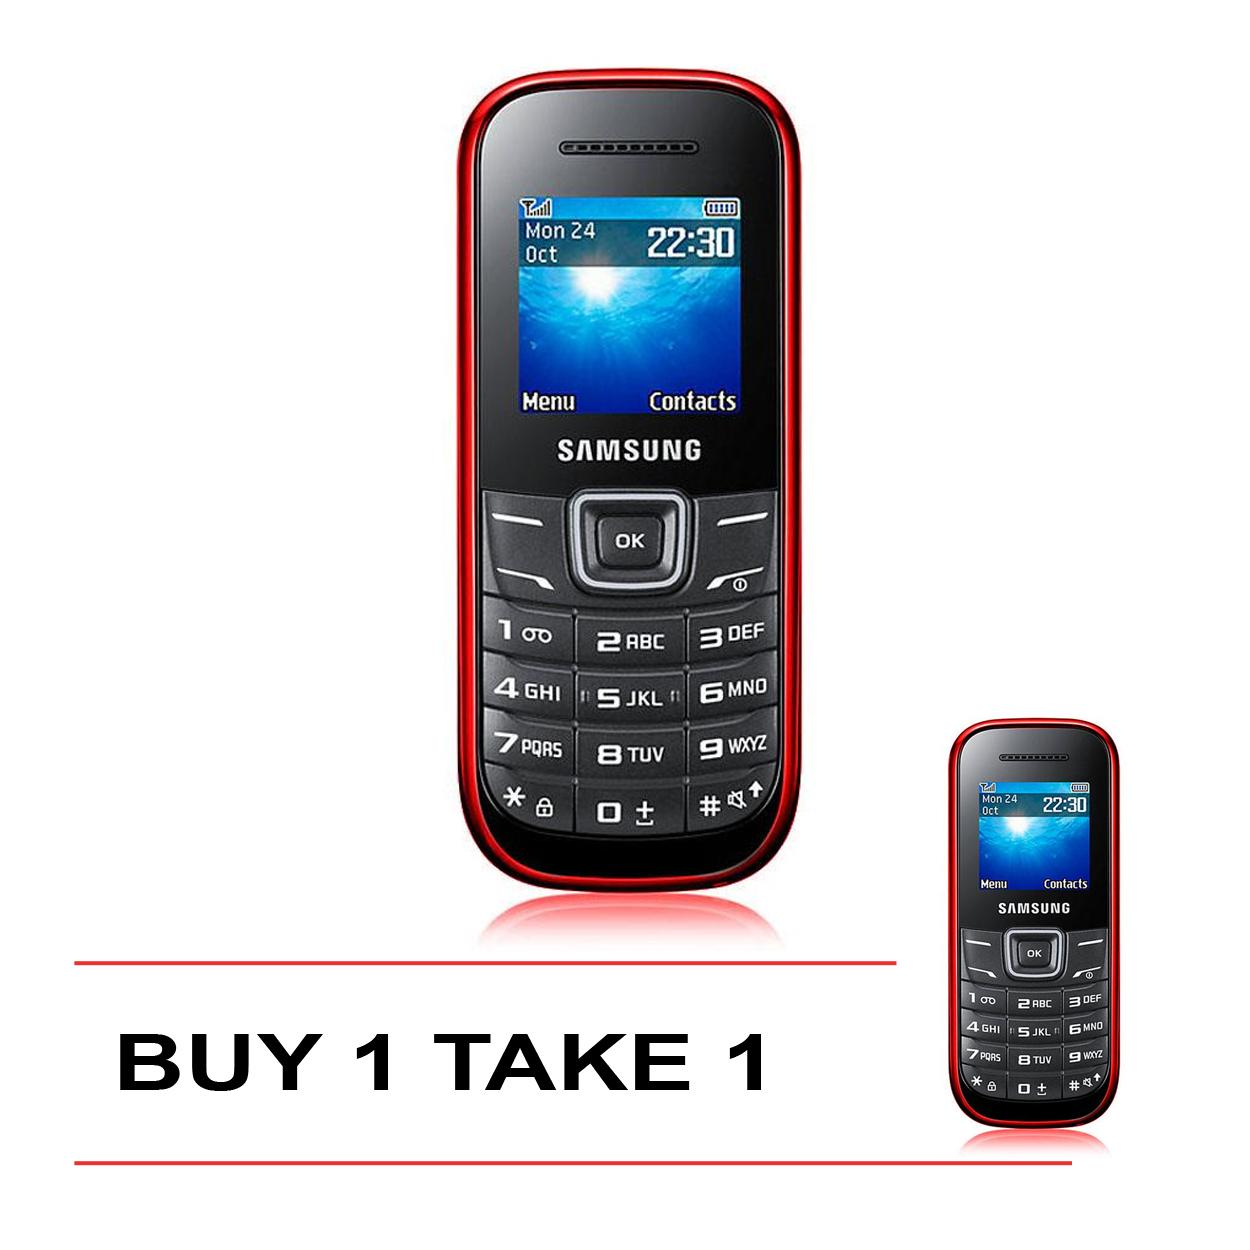 Sam-Sung Keystone V1200 Mobile Phone Buy 1 Take 1